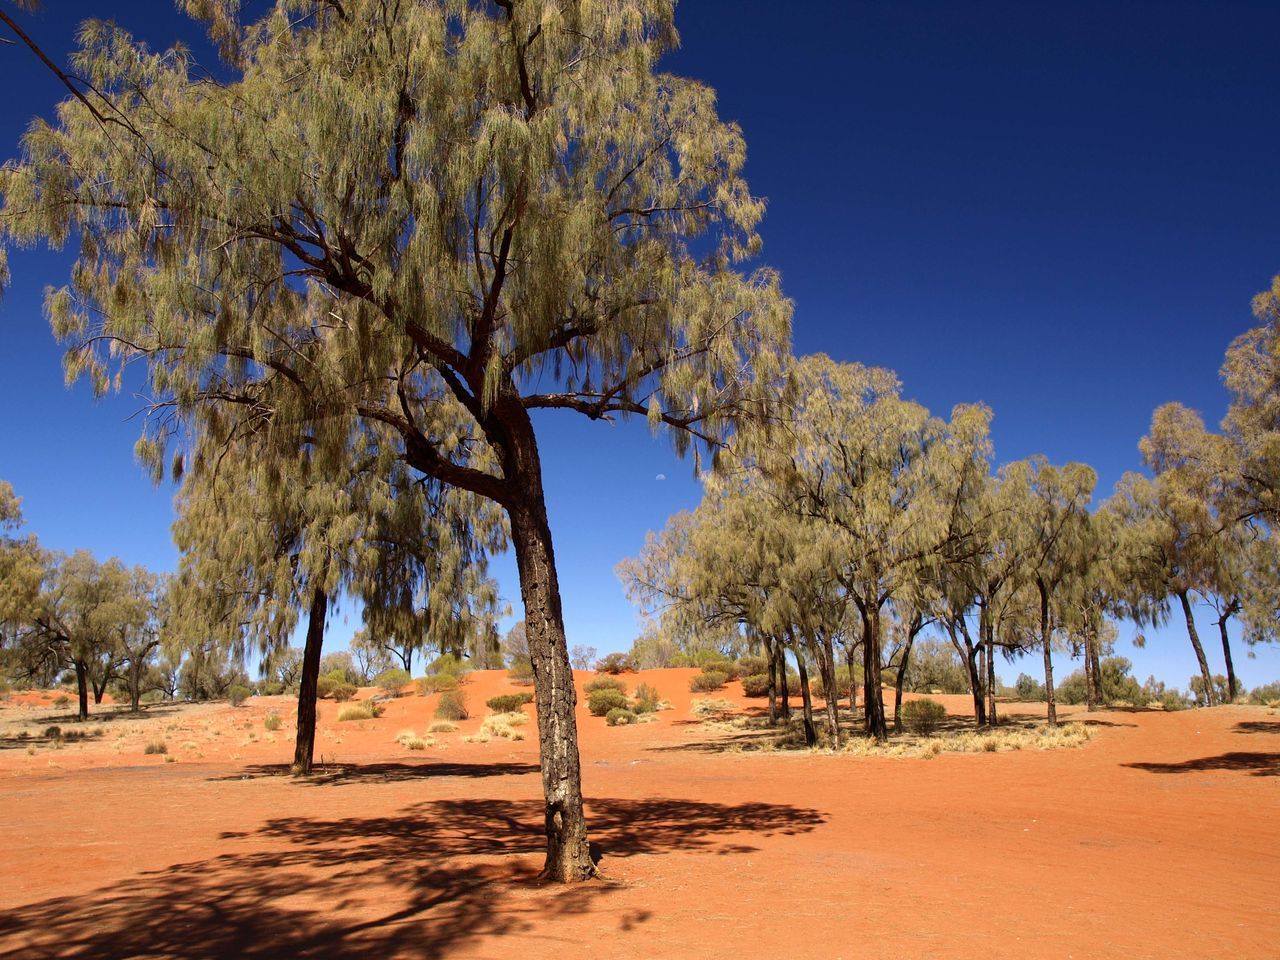 tree, nature, sand, tranquility, beauty in nature, tranquil scene, blue, scenics, sunlight, clear sky, landscape, outdoors, day, no people, sky, branch, growth, arid climate, blue sky